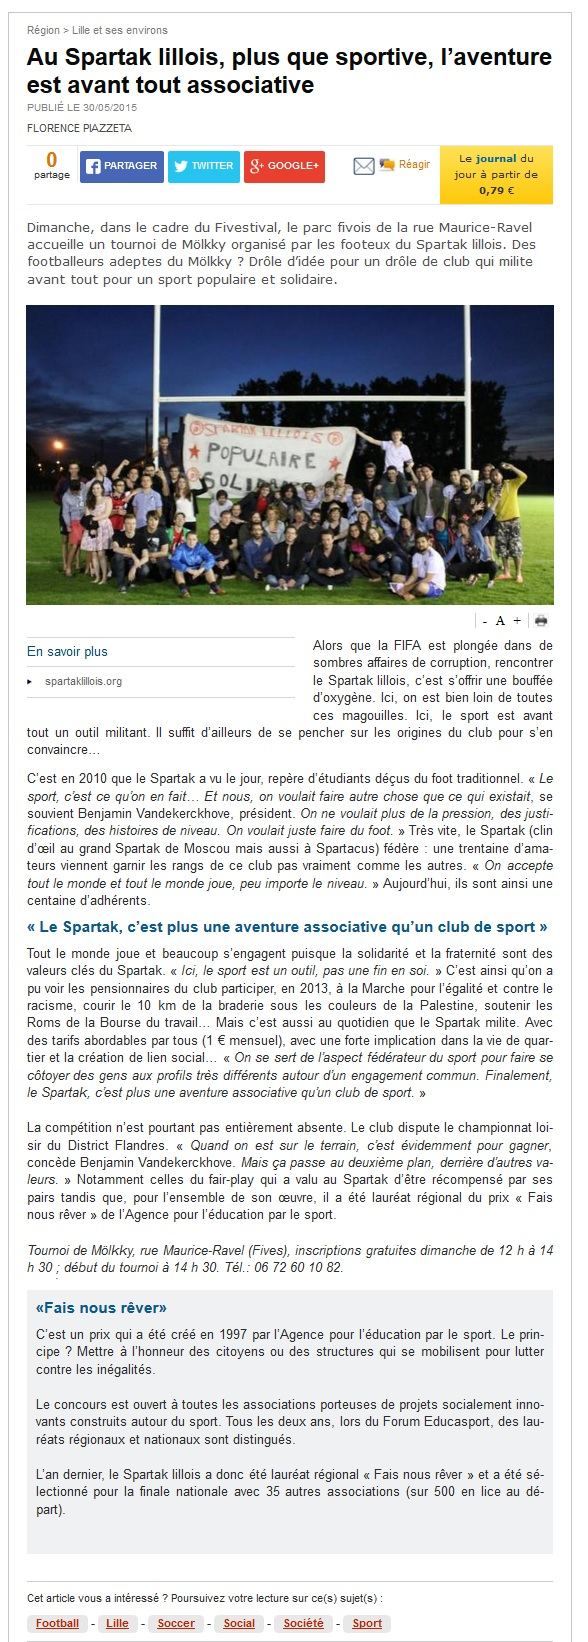 article vdn